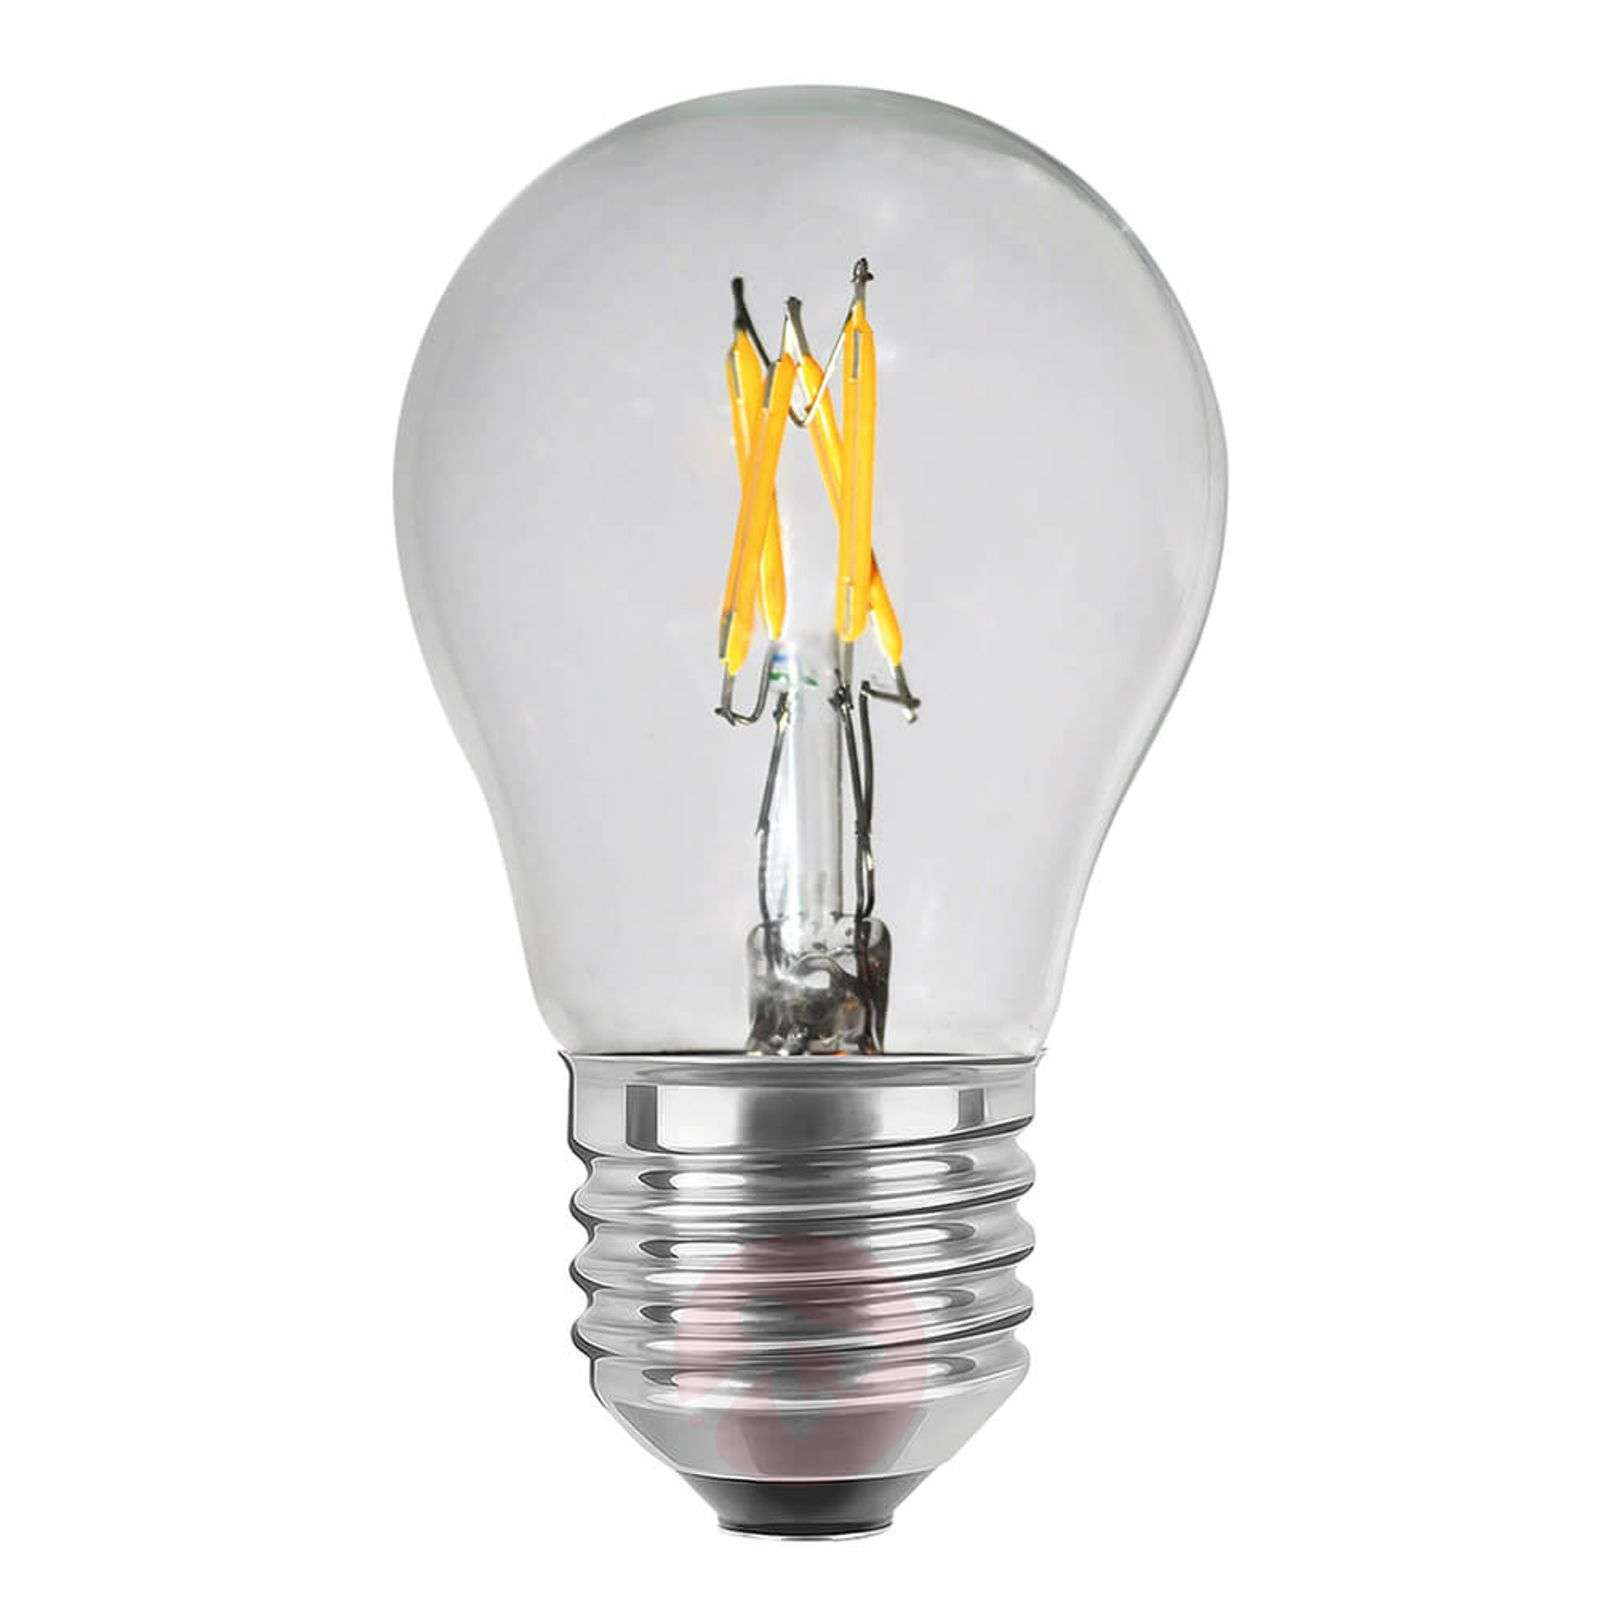 Ampoule LED E27 2,7W transparente, variable-8536099-02